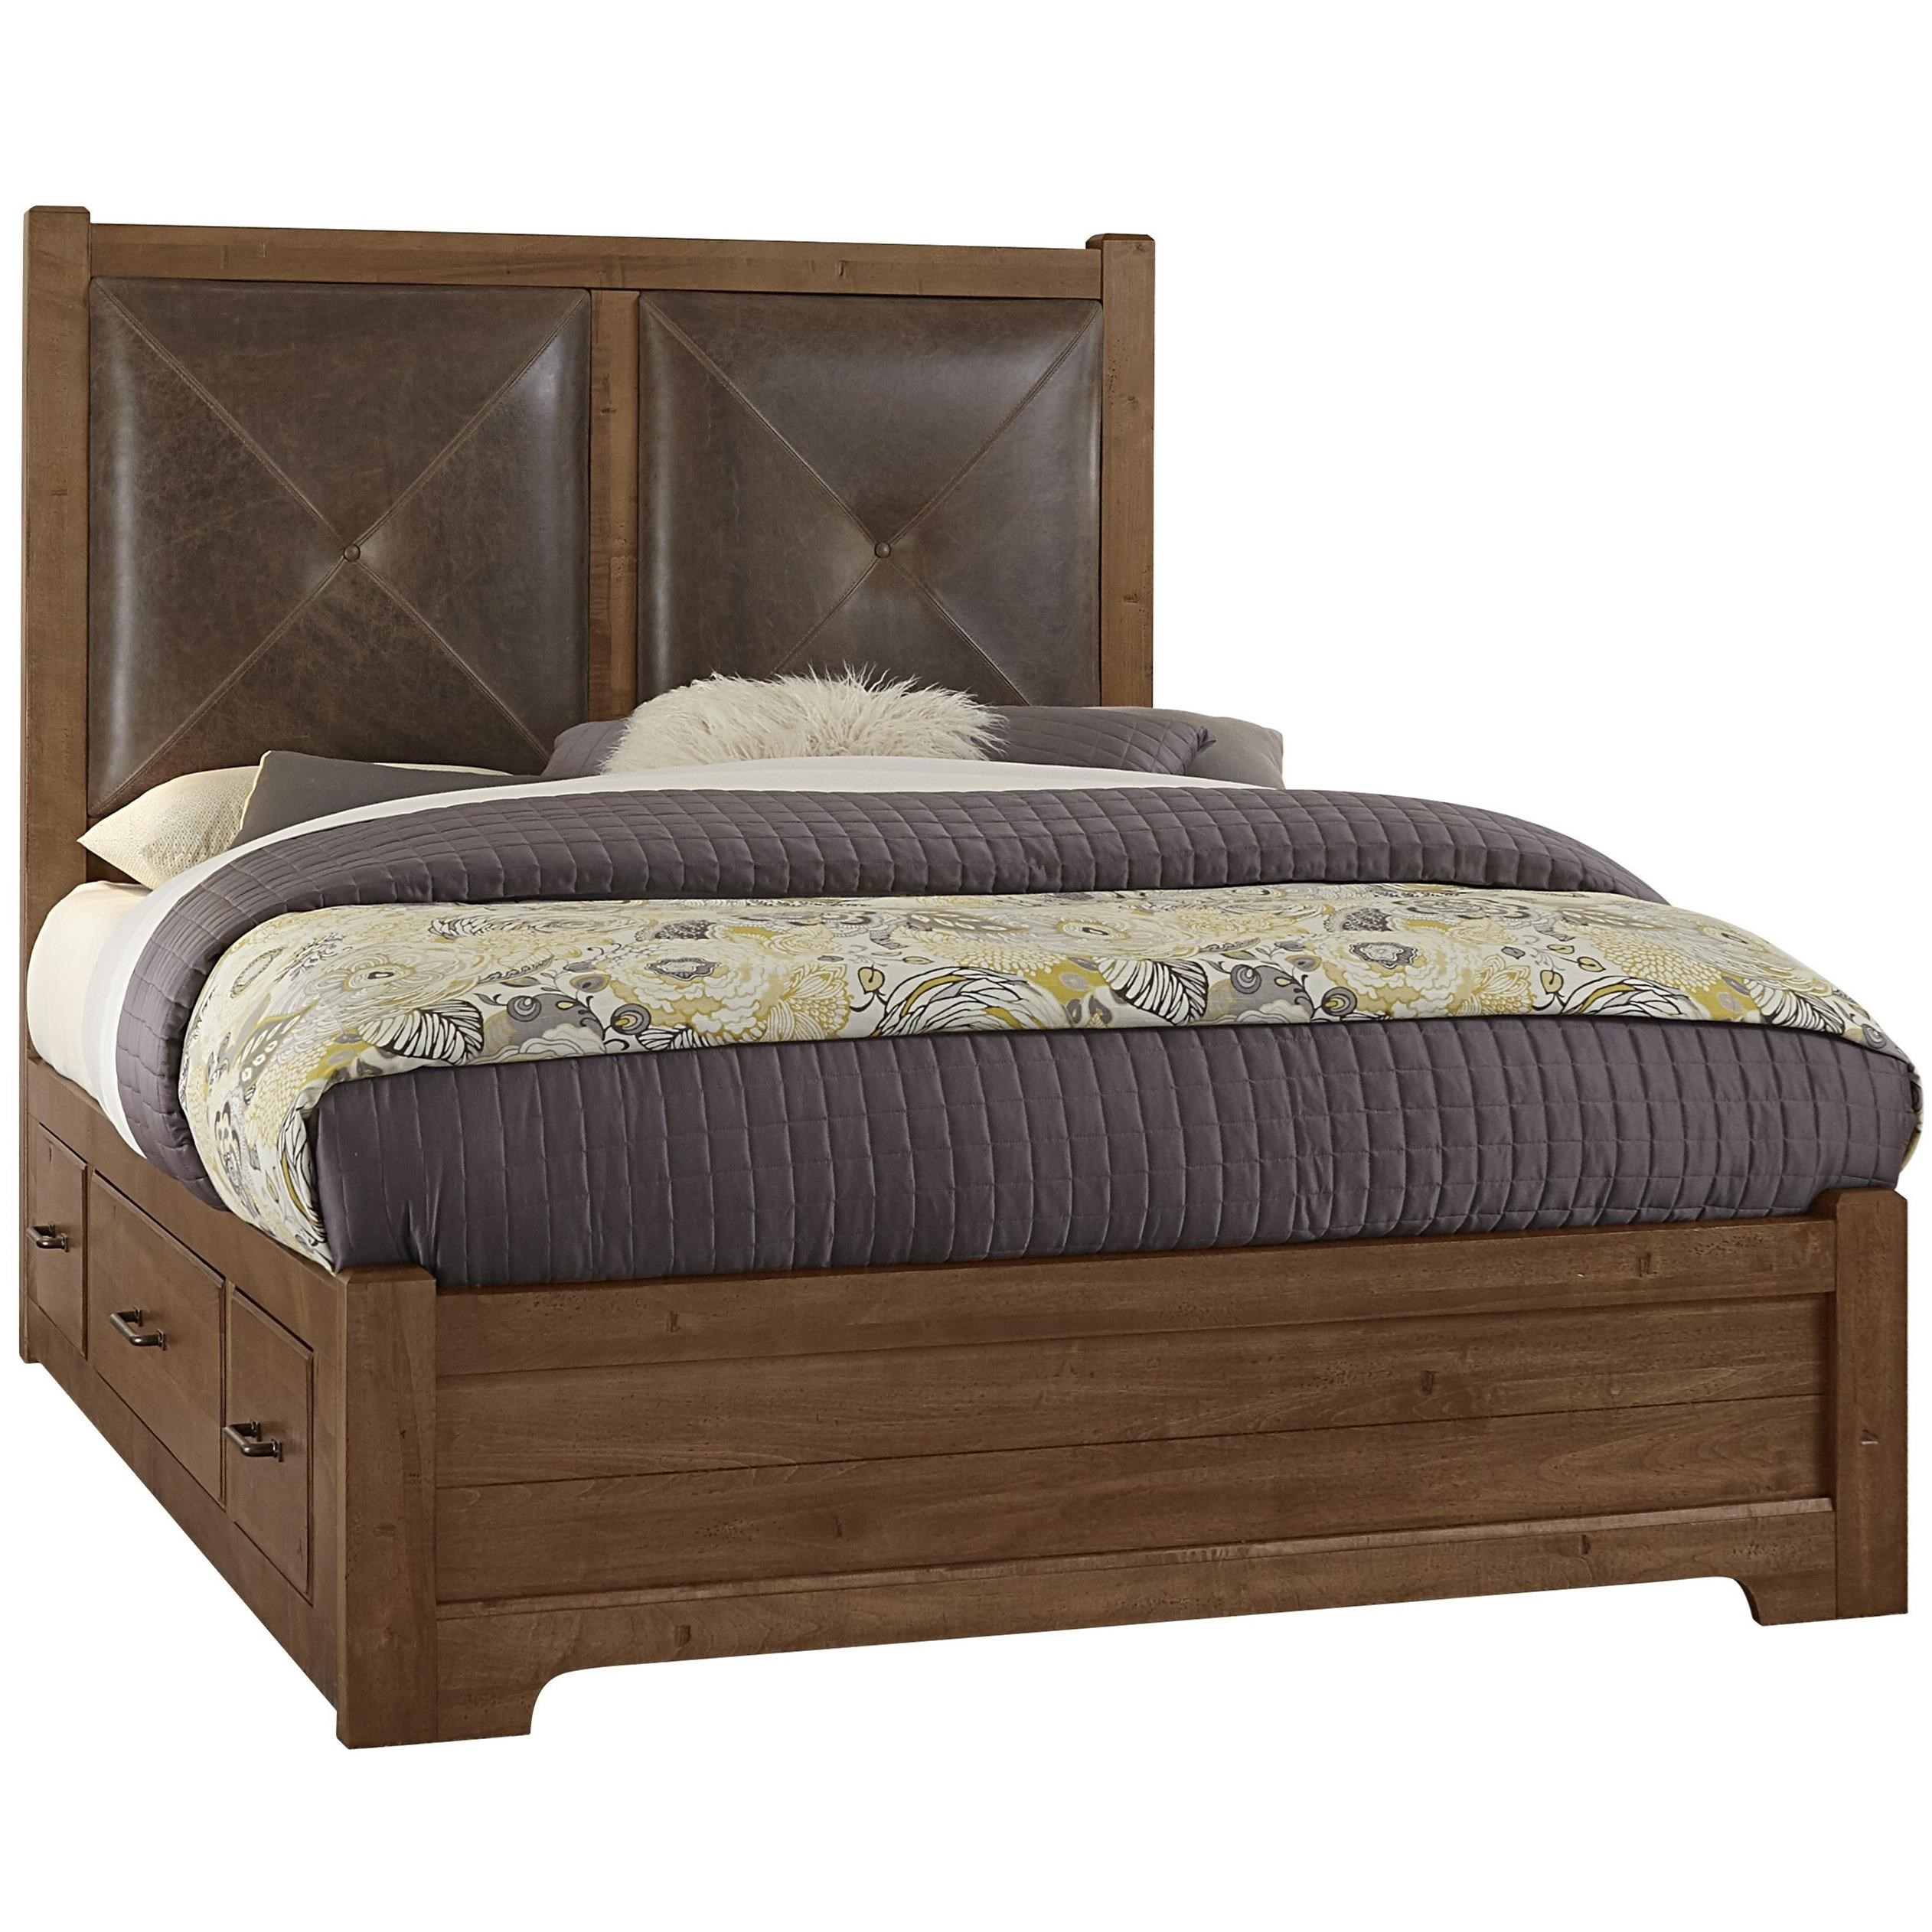 Queen Leather Bed with Double Side Storage